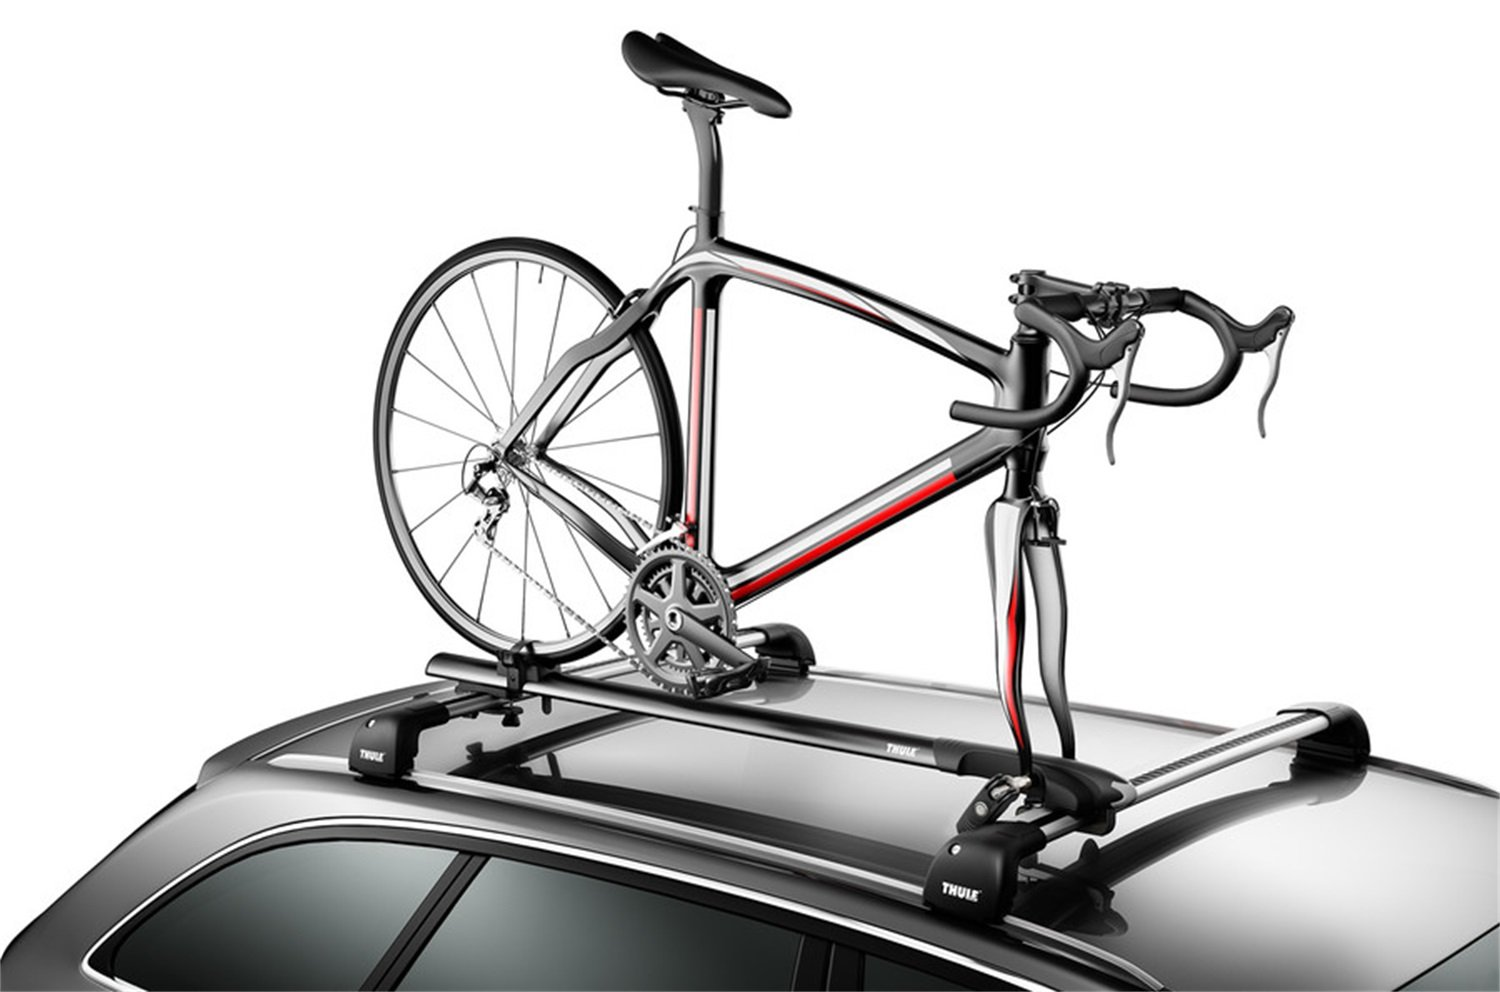 thule on racks rack replacement bar roof awesome carrier to zoom parts bike